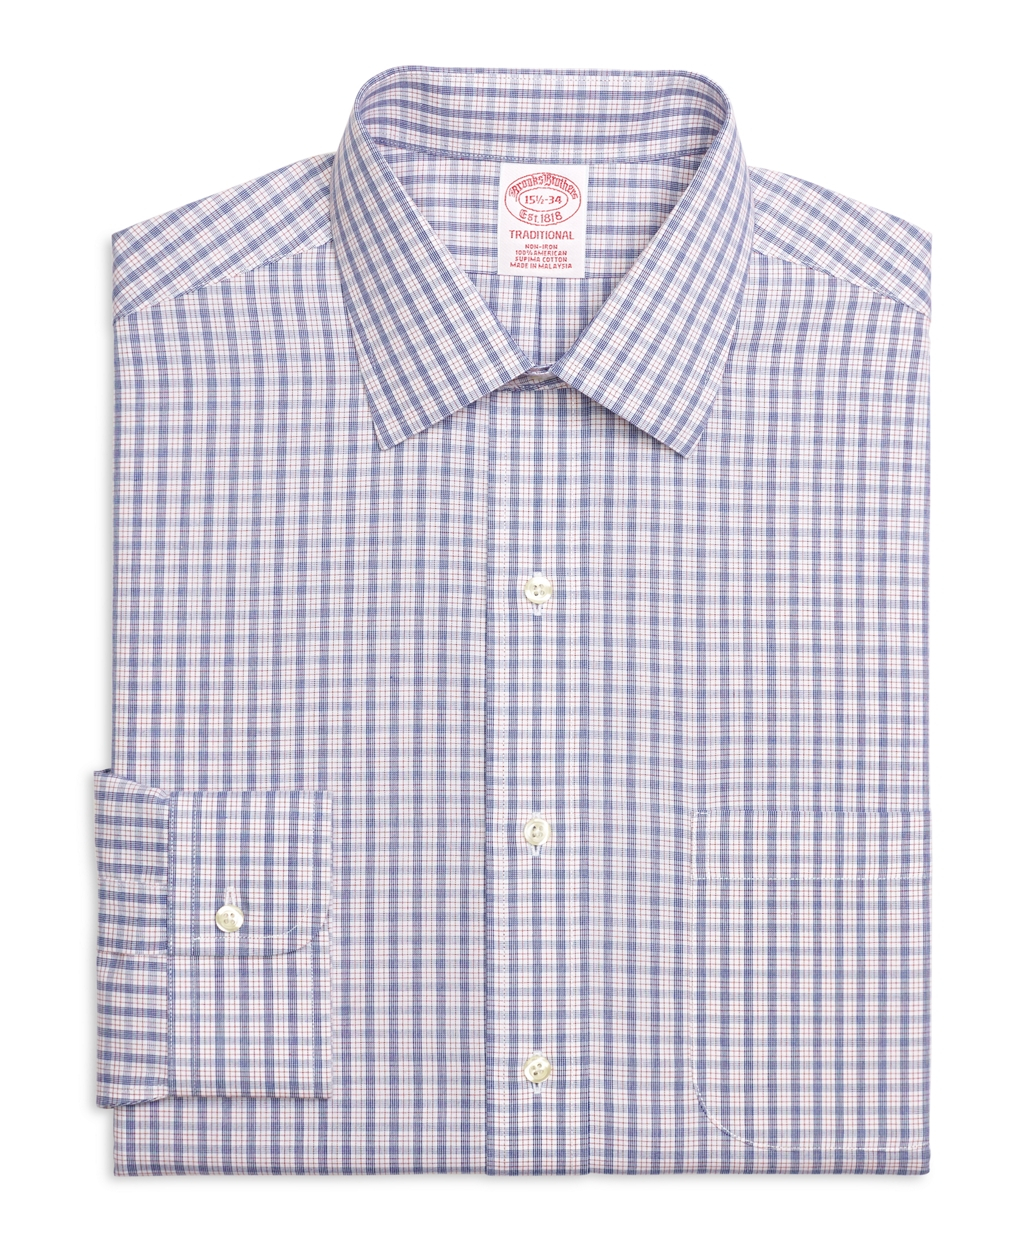 Brooks brothers non iron madison fit hairline check dress for Brooks brothers dress shirt fit guide